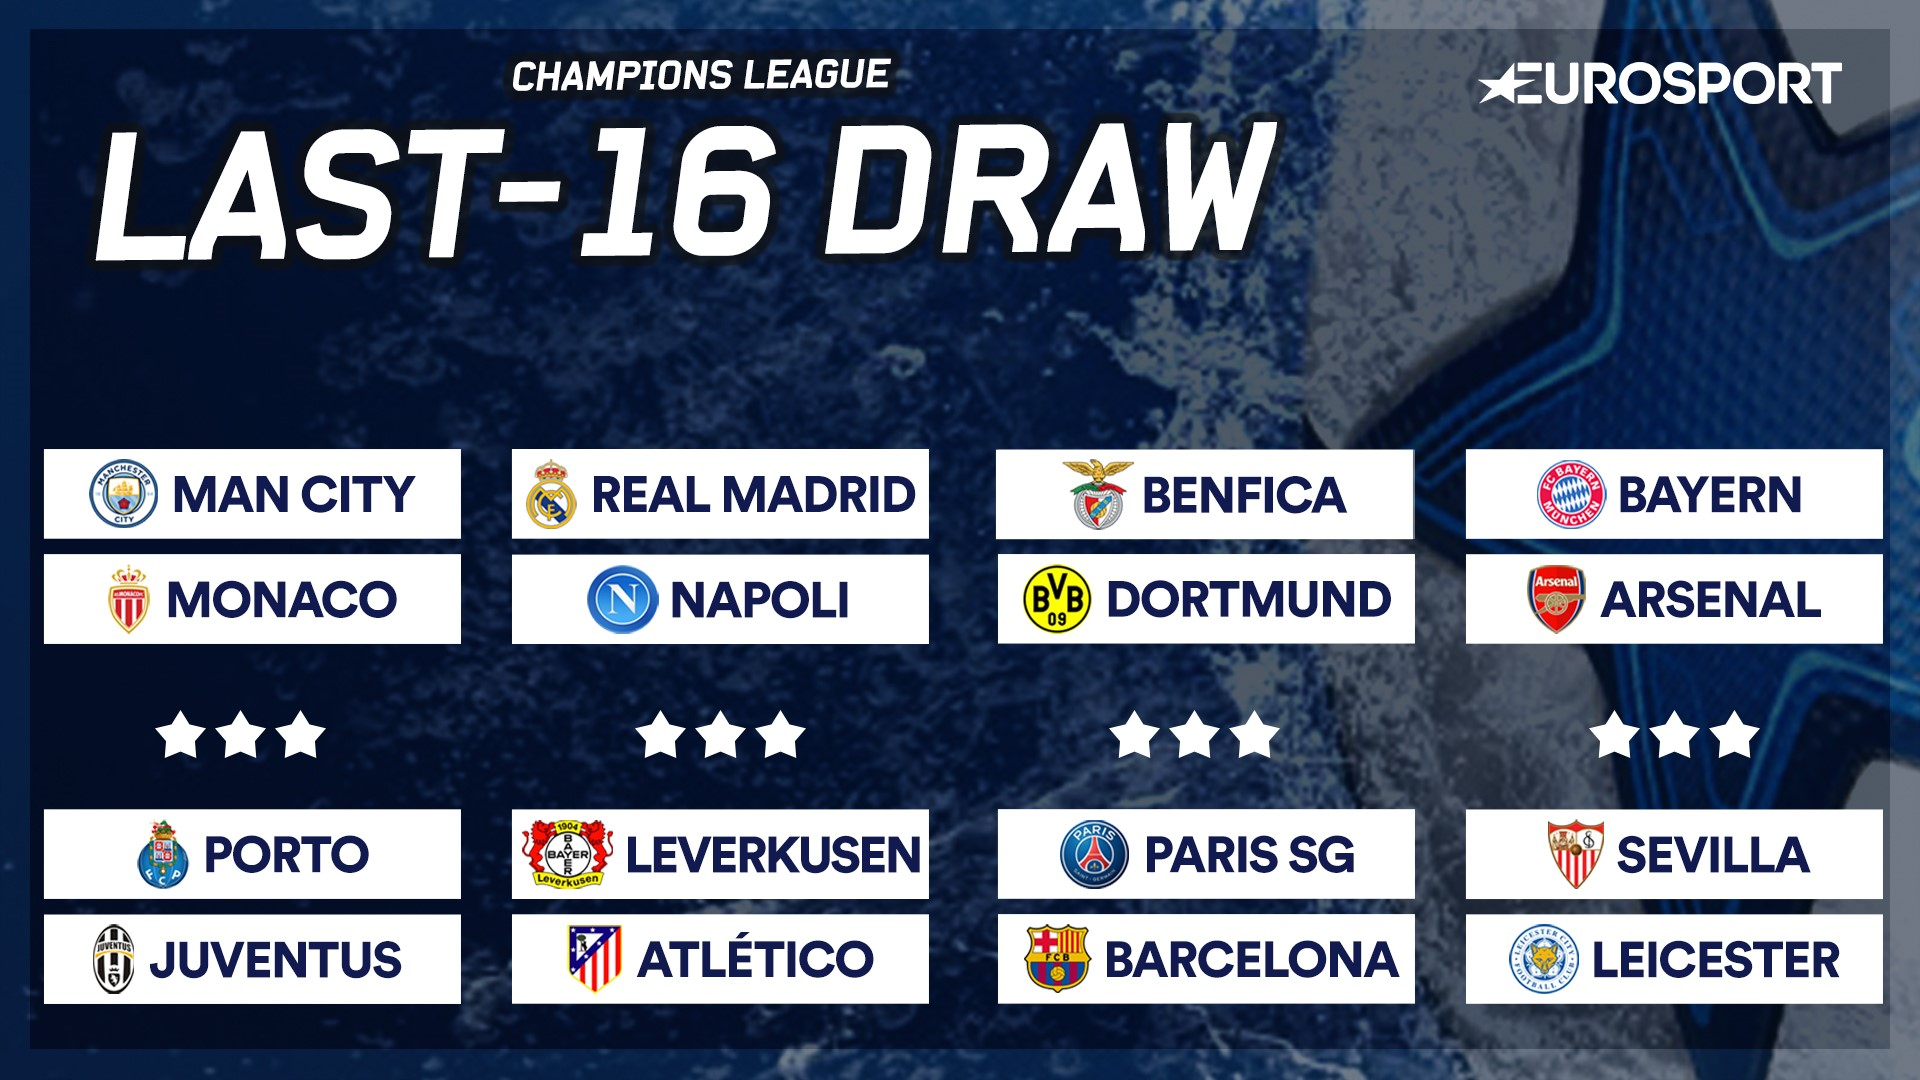 Champions League draw in 2017 37